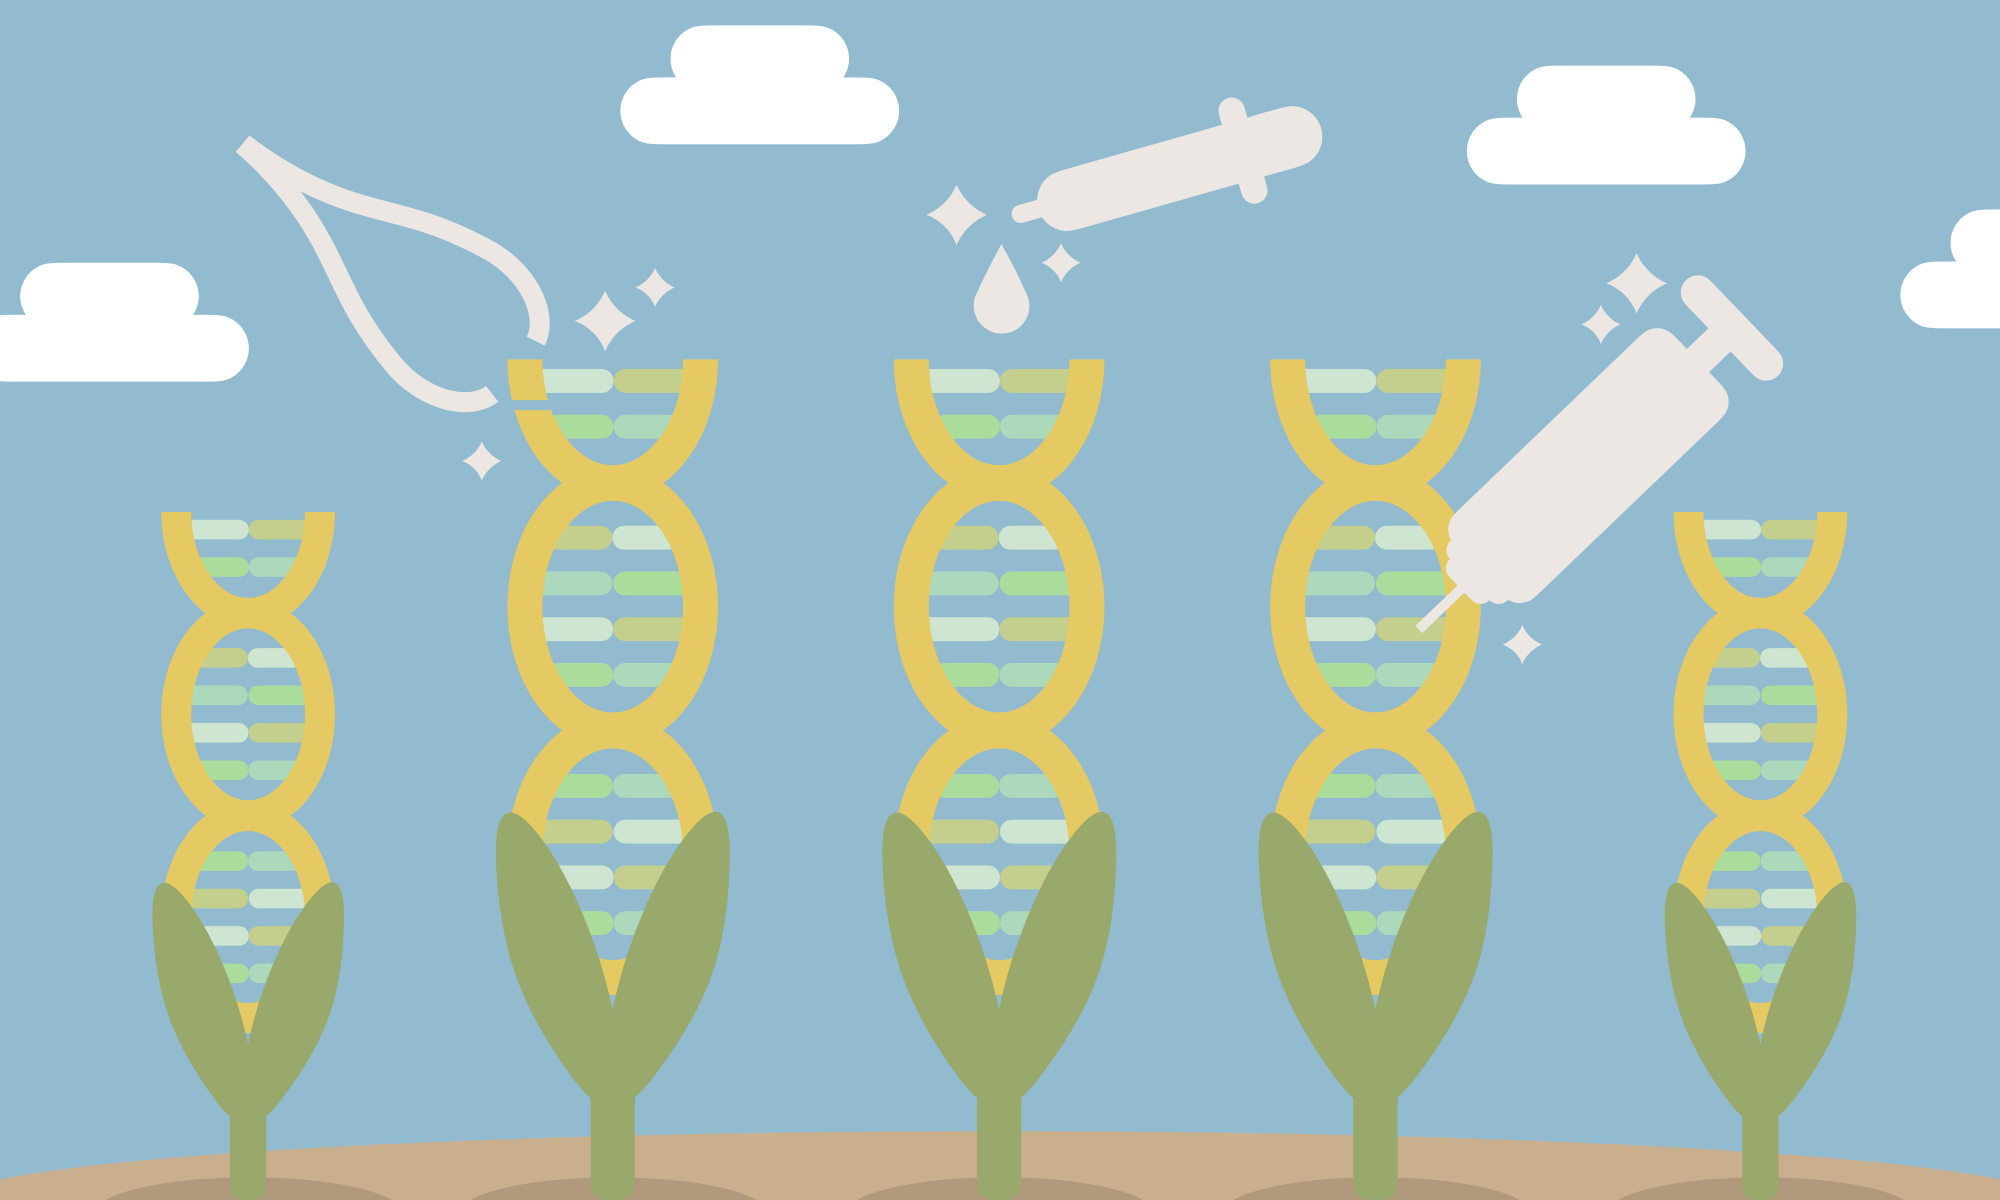 Weighing the Positives and Negatives in GMOs